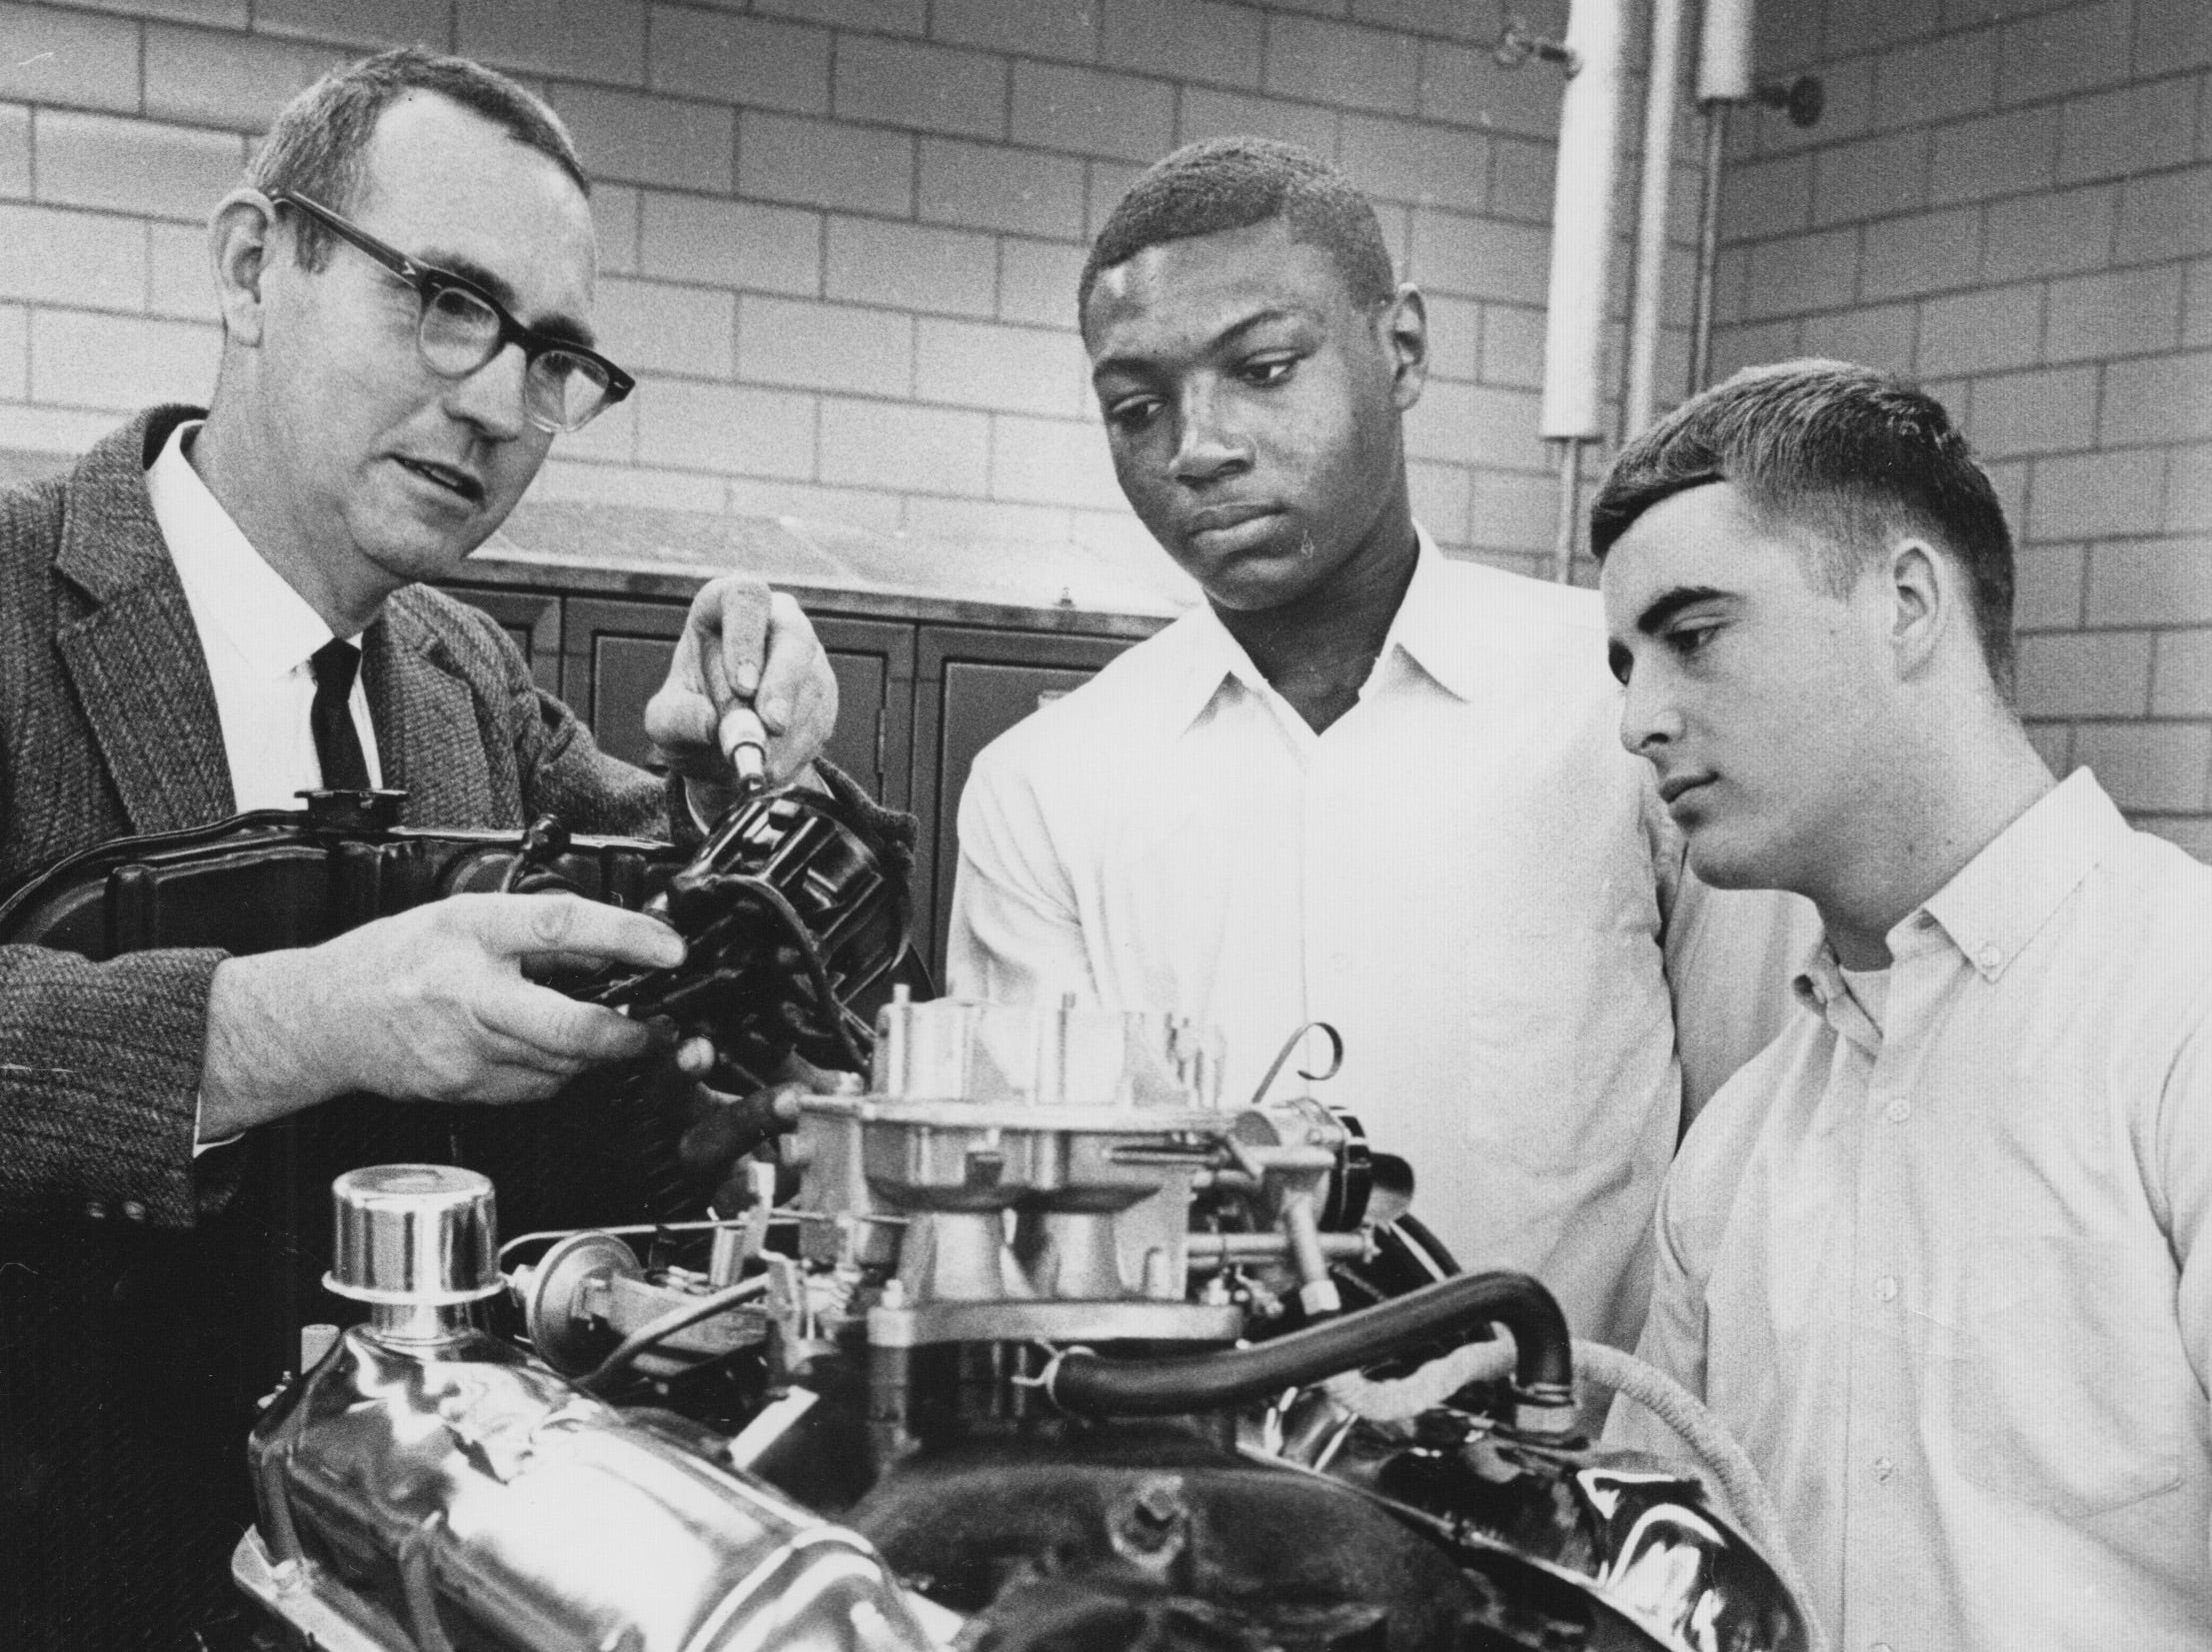 Washington High School students Bill Rogers and John Hill watch as auto shop instructor Stewart Joyce works on a Ford 289 cubic inch, V-8 engine donated in 1966 by the Ford Motor Co. due to a demand for trained auto mechanics.